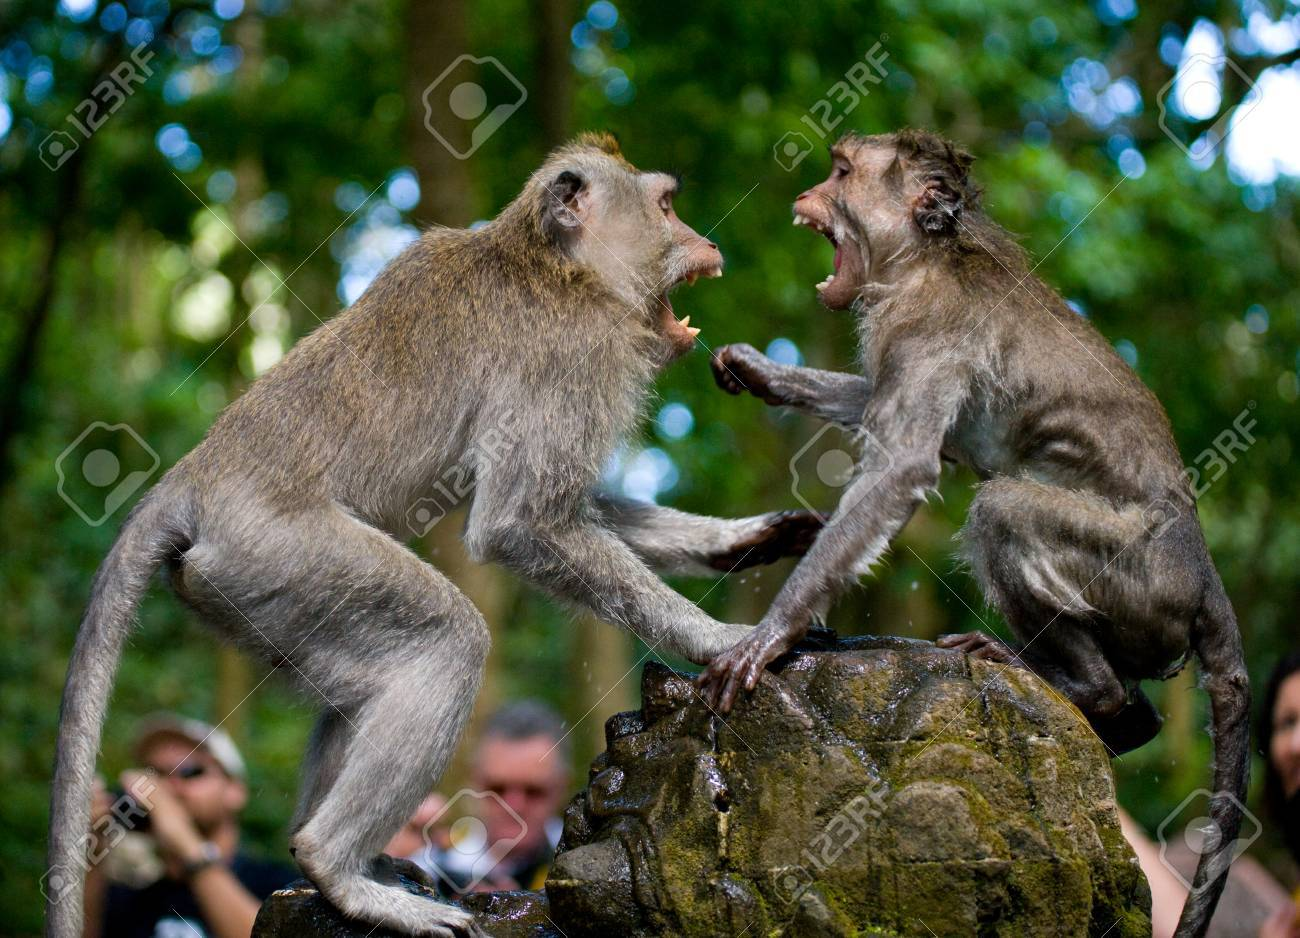 2 Macaques、マカク属寺院で互い...